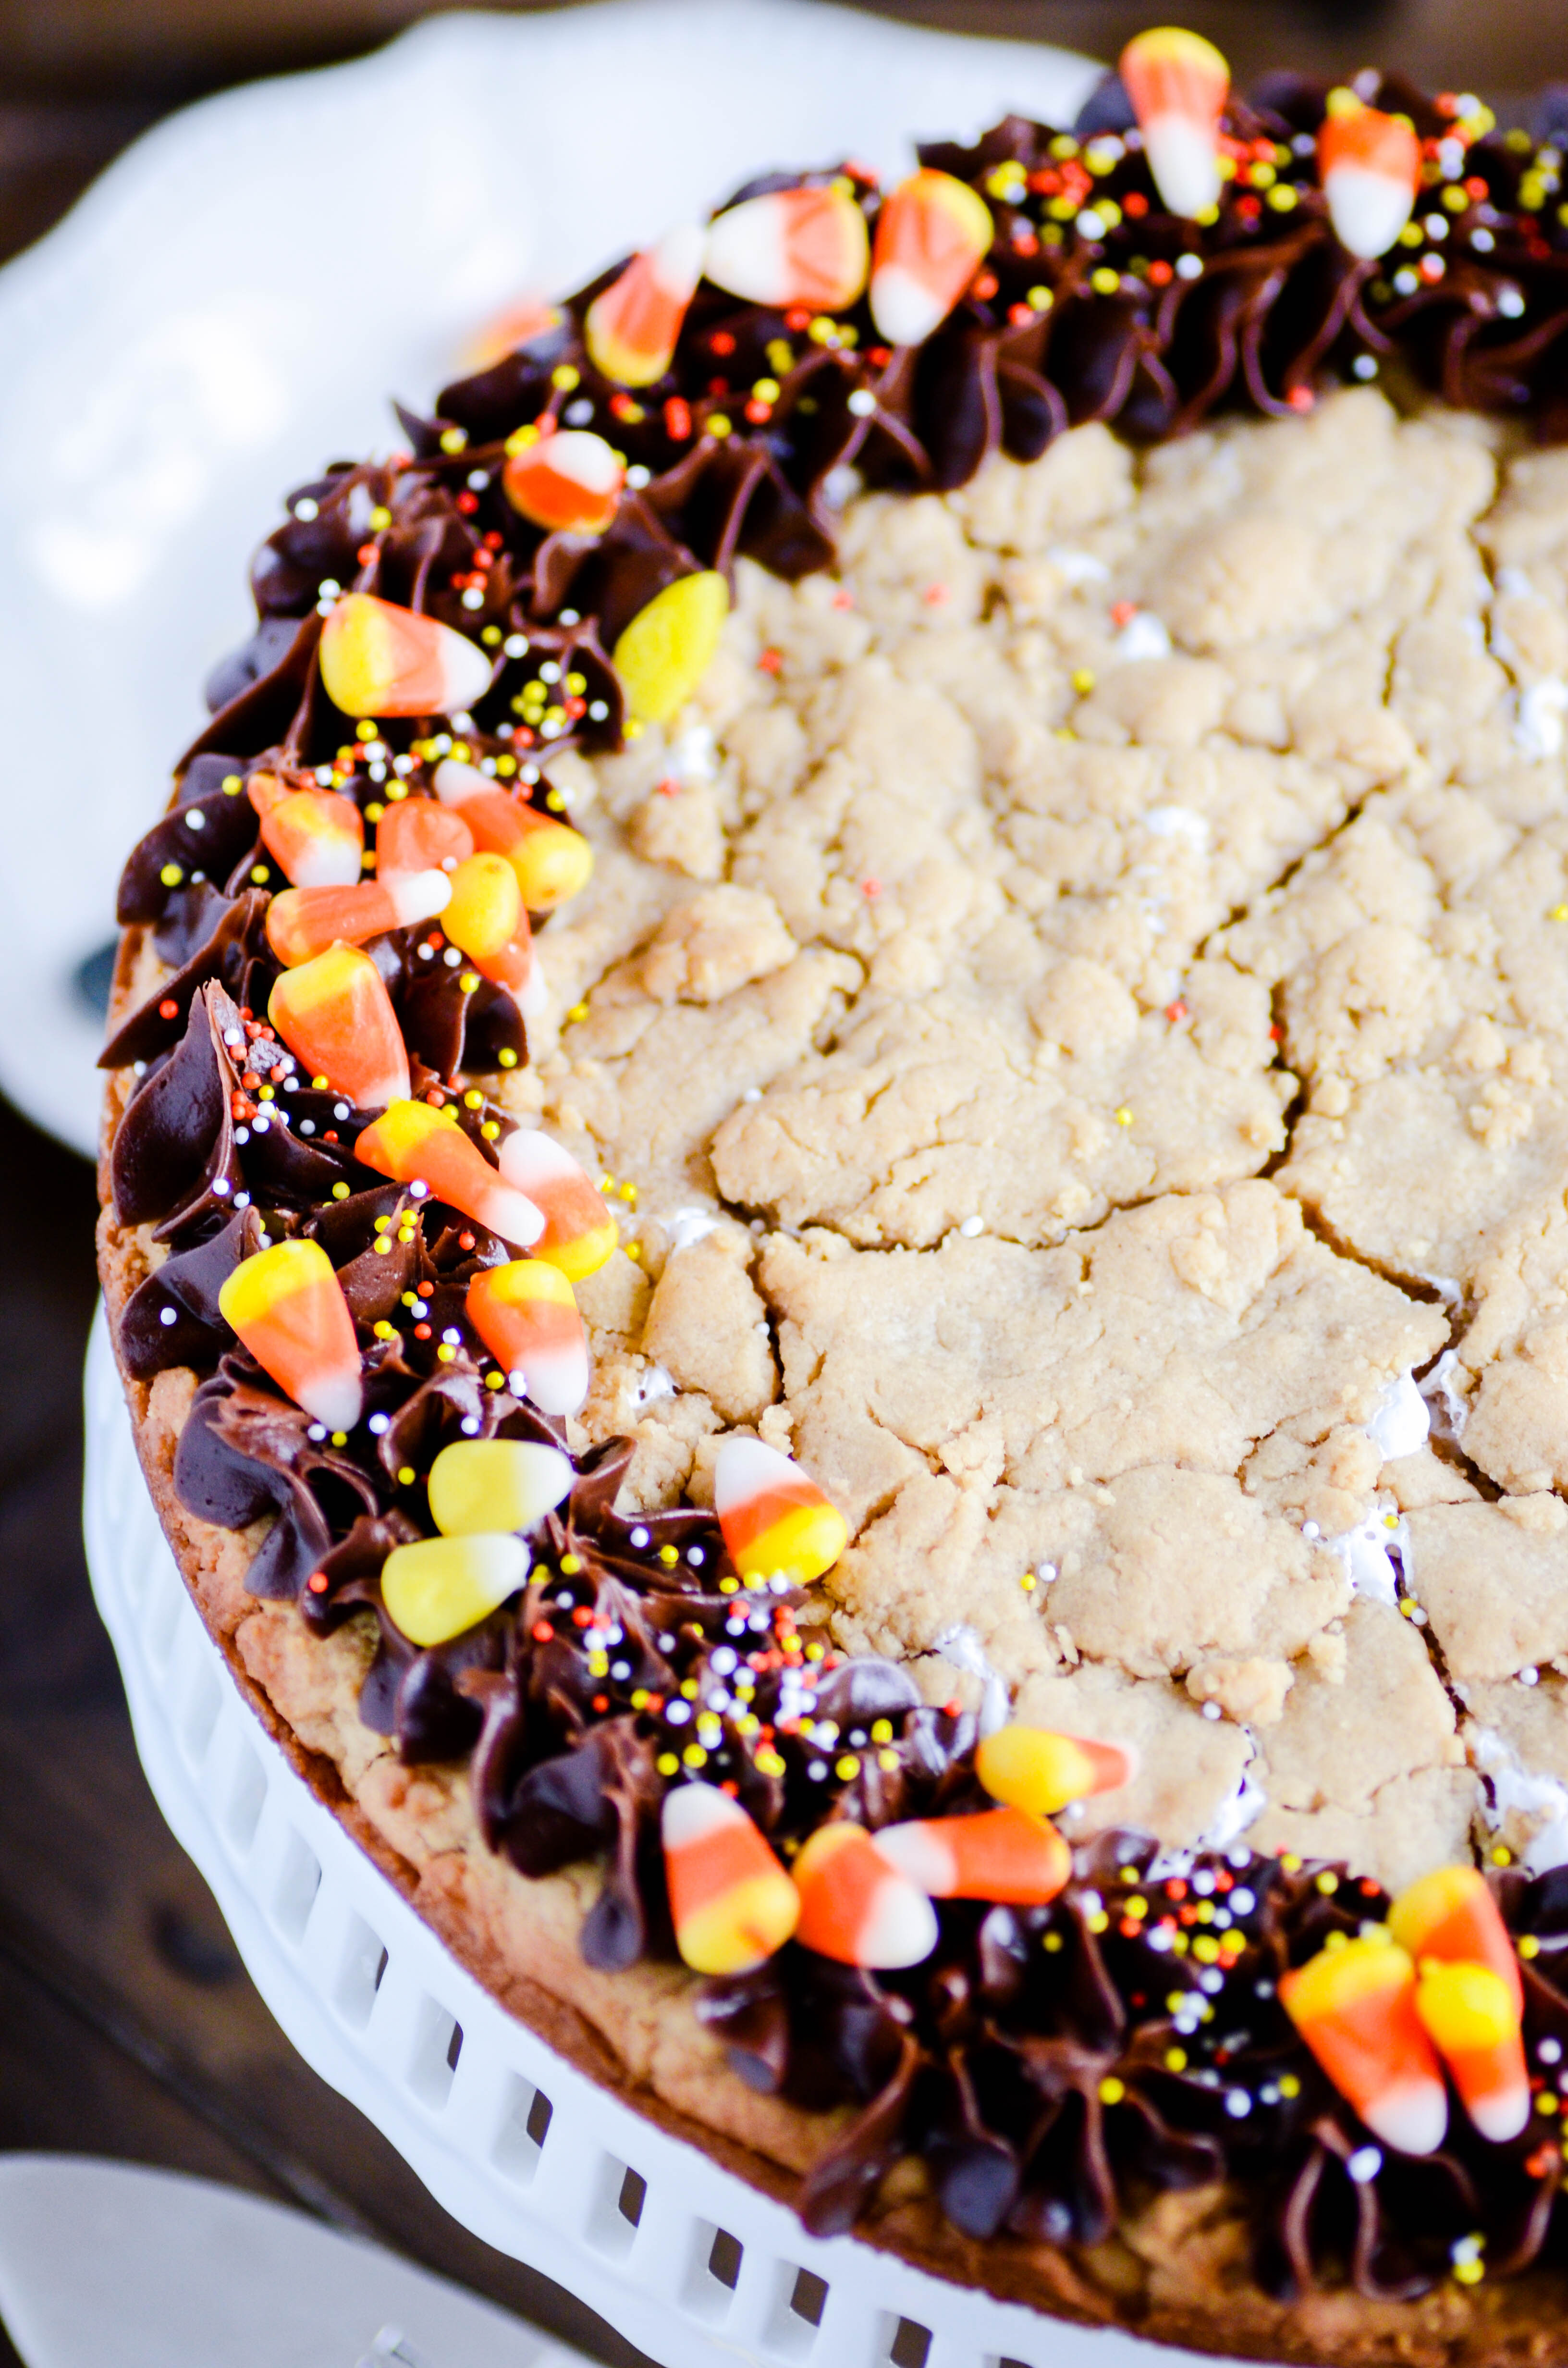 A peanut butter cookie the size of a cake filled with marshmallow cream! Topped with chocolate frosting and candy corn. Slice and serve!